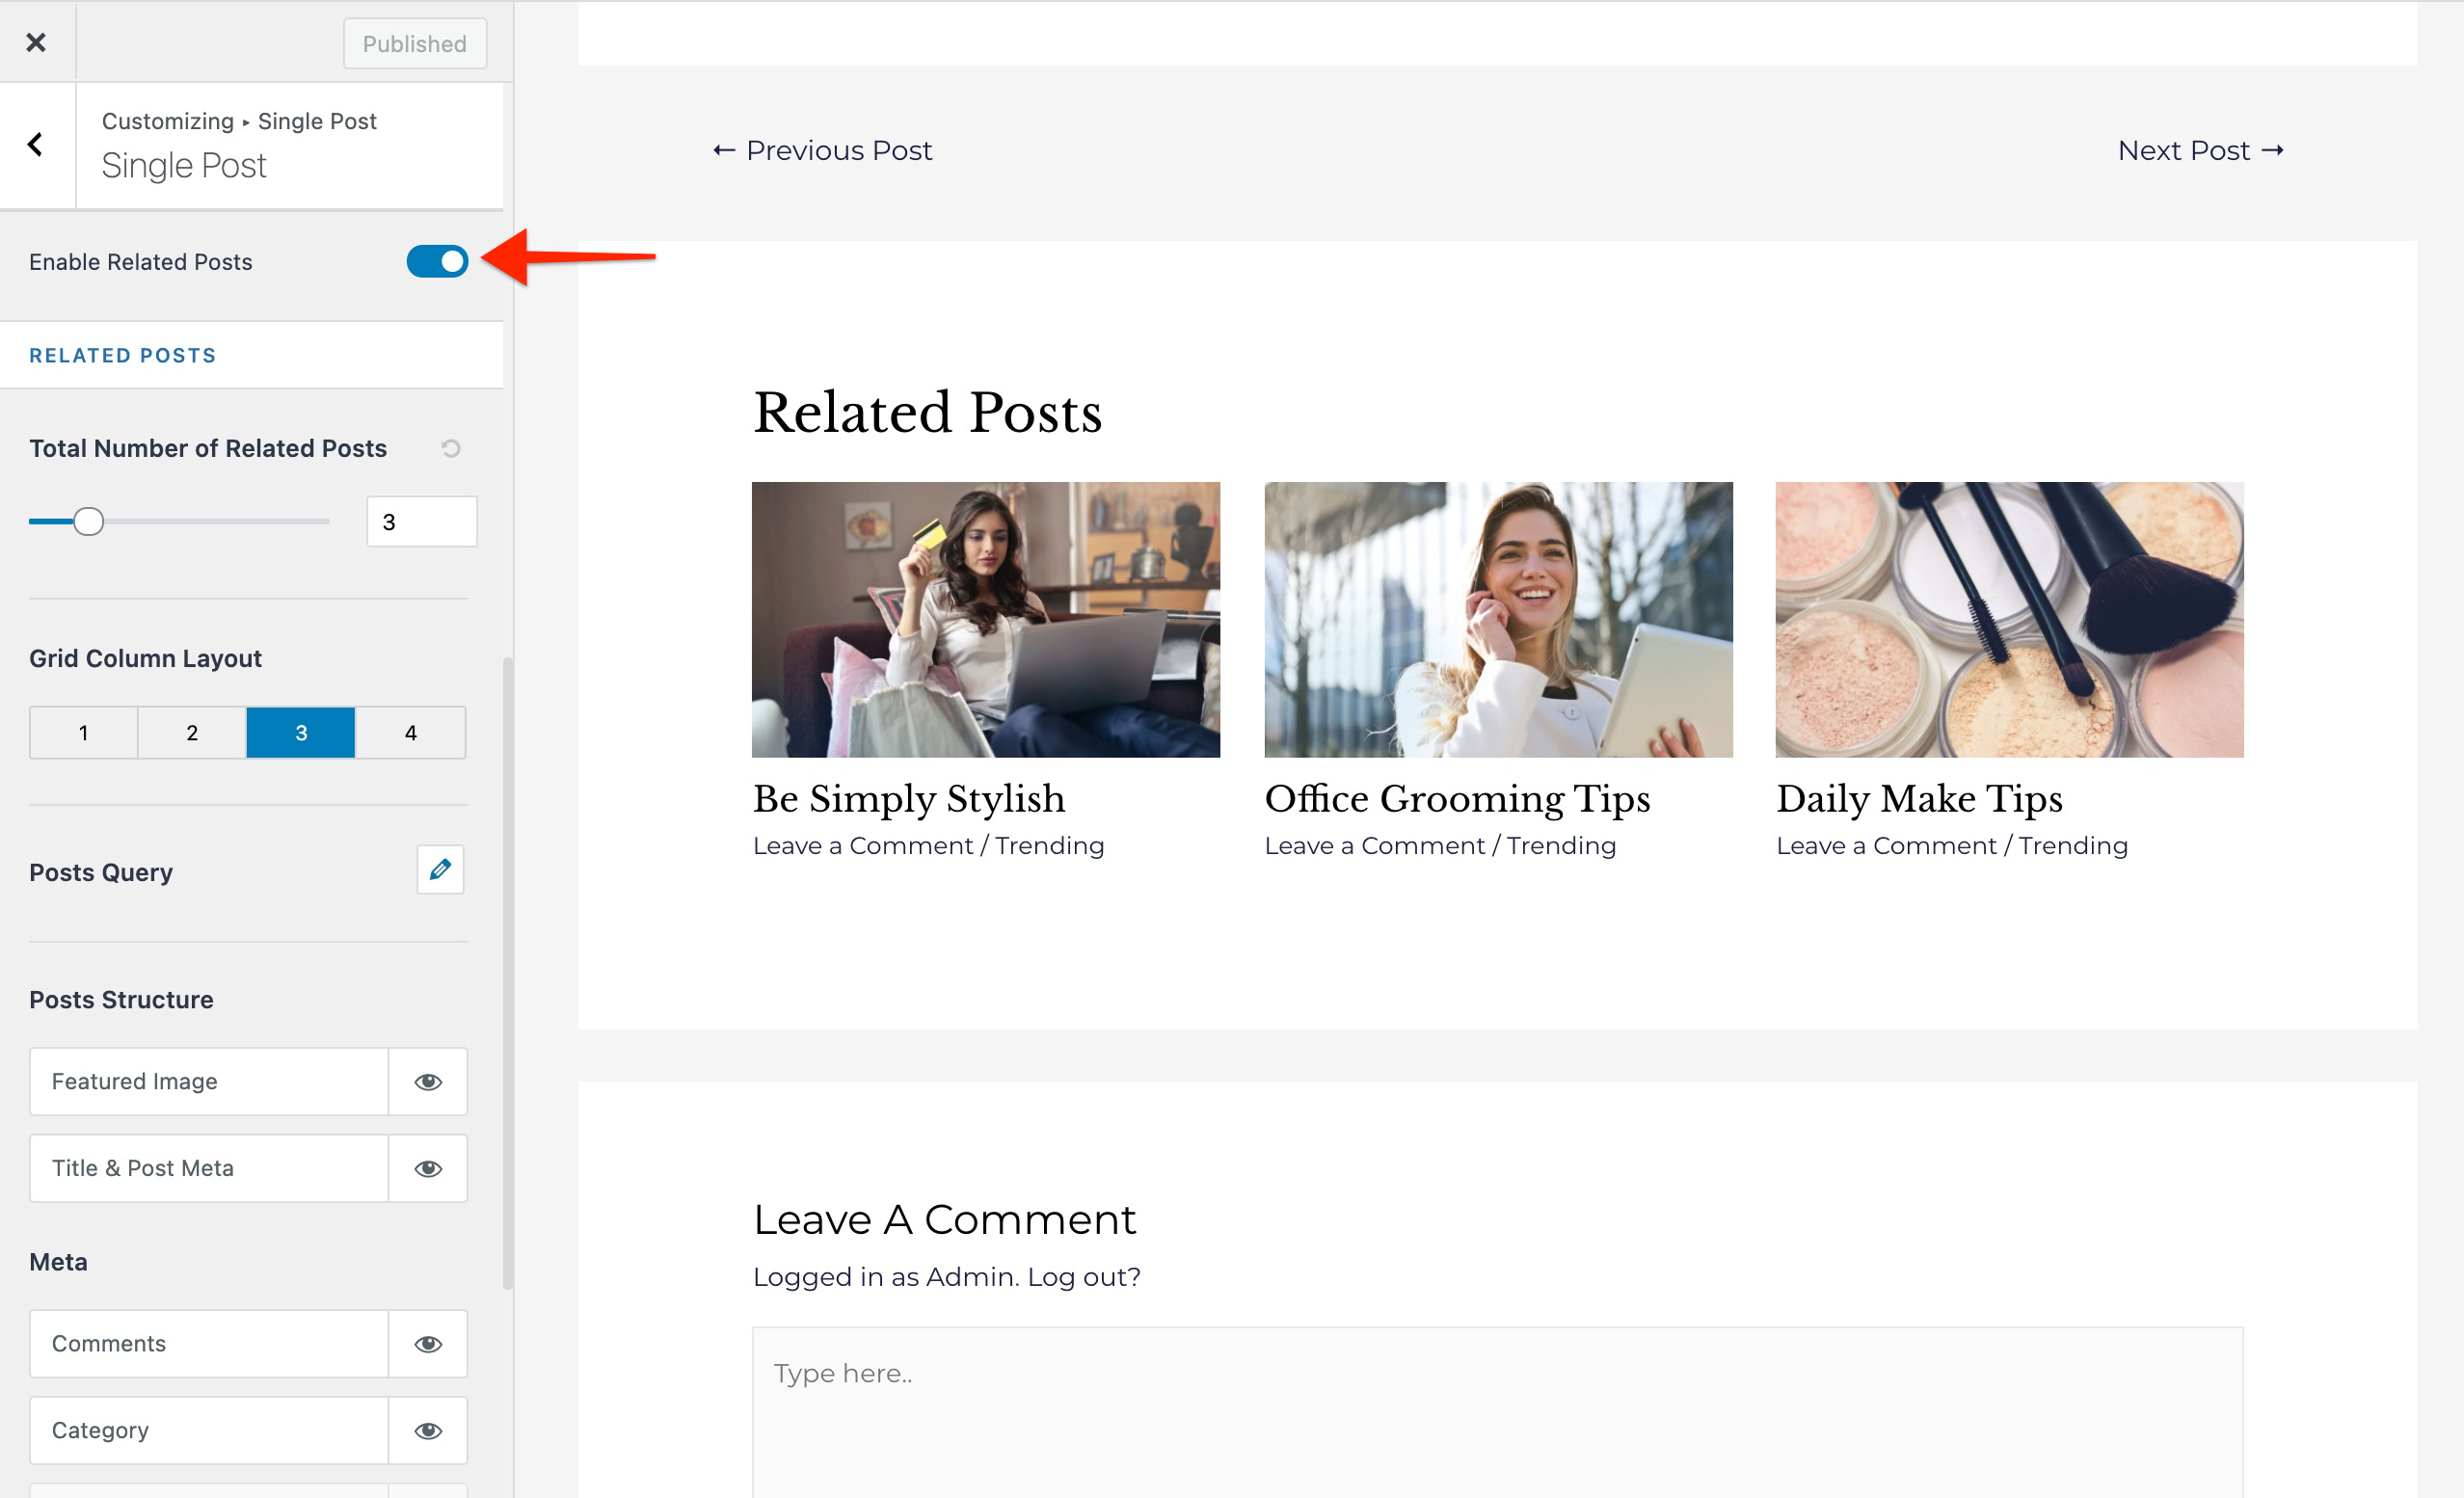 Related Posts - enable feature